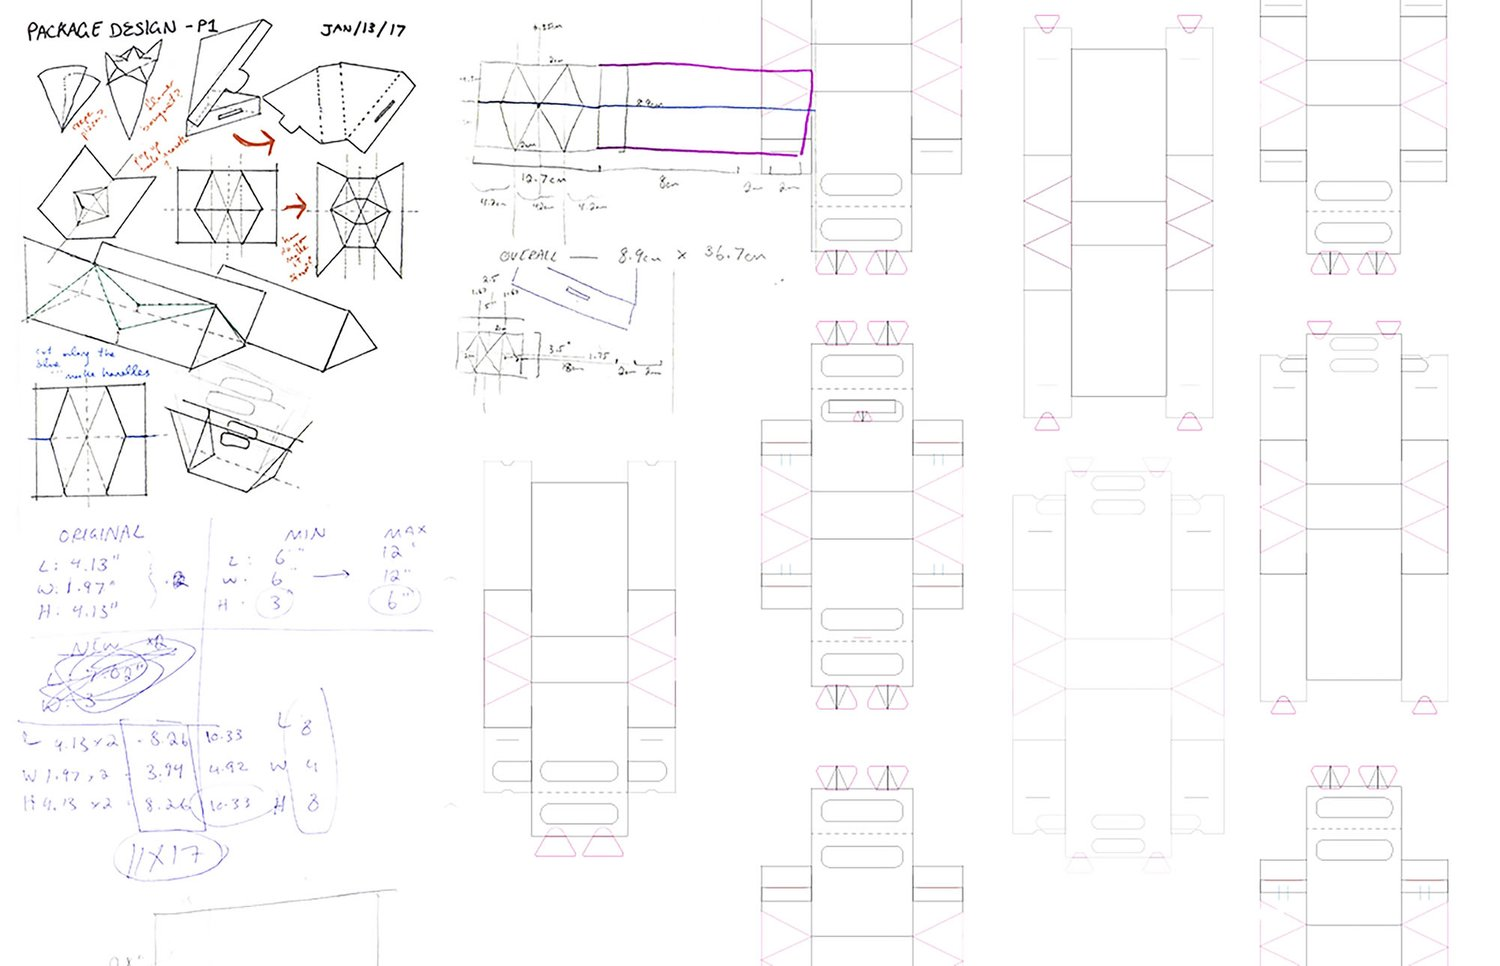 Explorations through sketching, dielines, and prototyping.